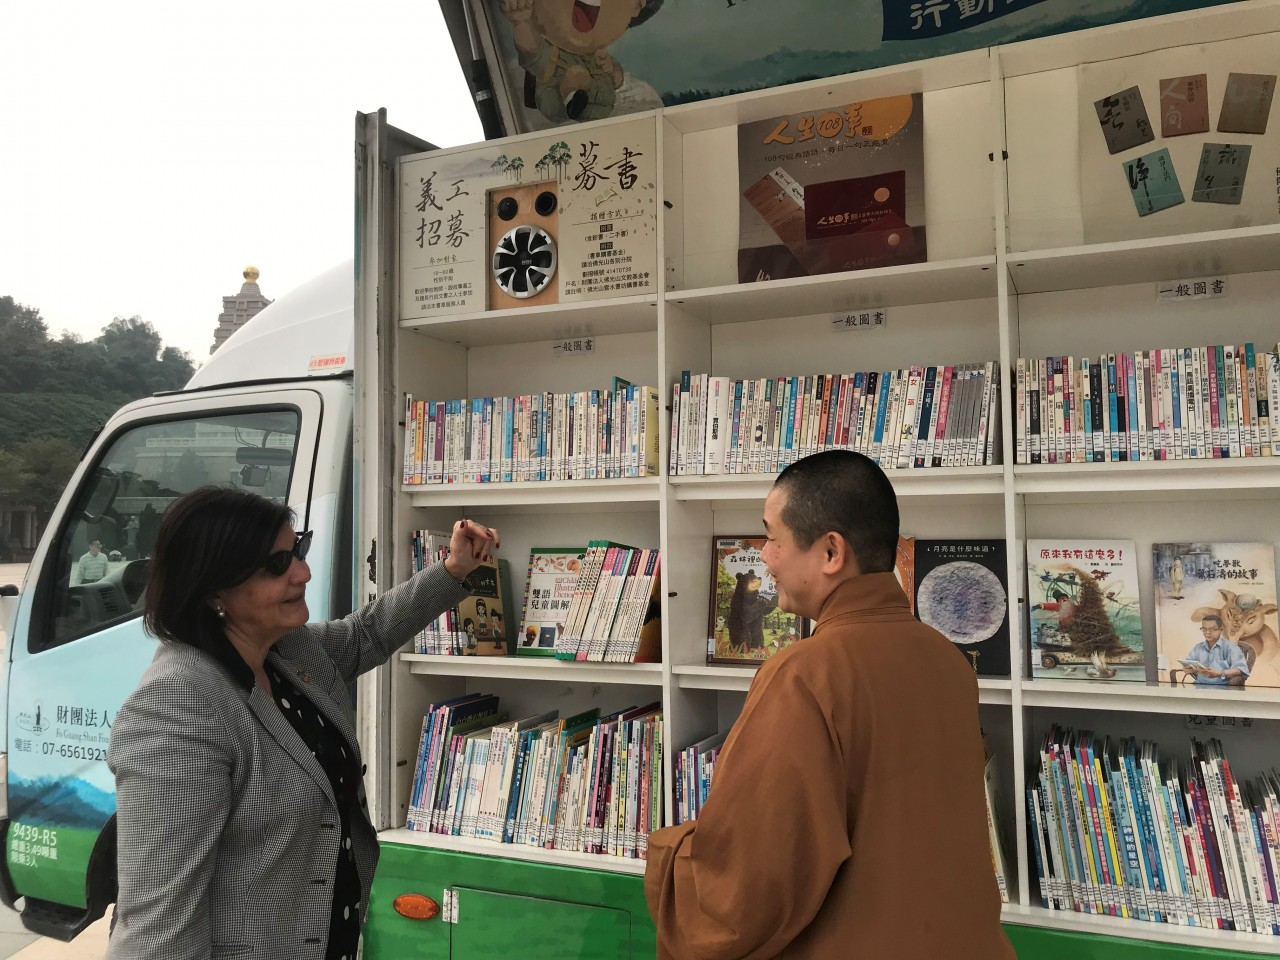 Glòria Pérez-Salmerón visits a bookmobile in Taiwan, China, run by a monk